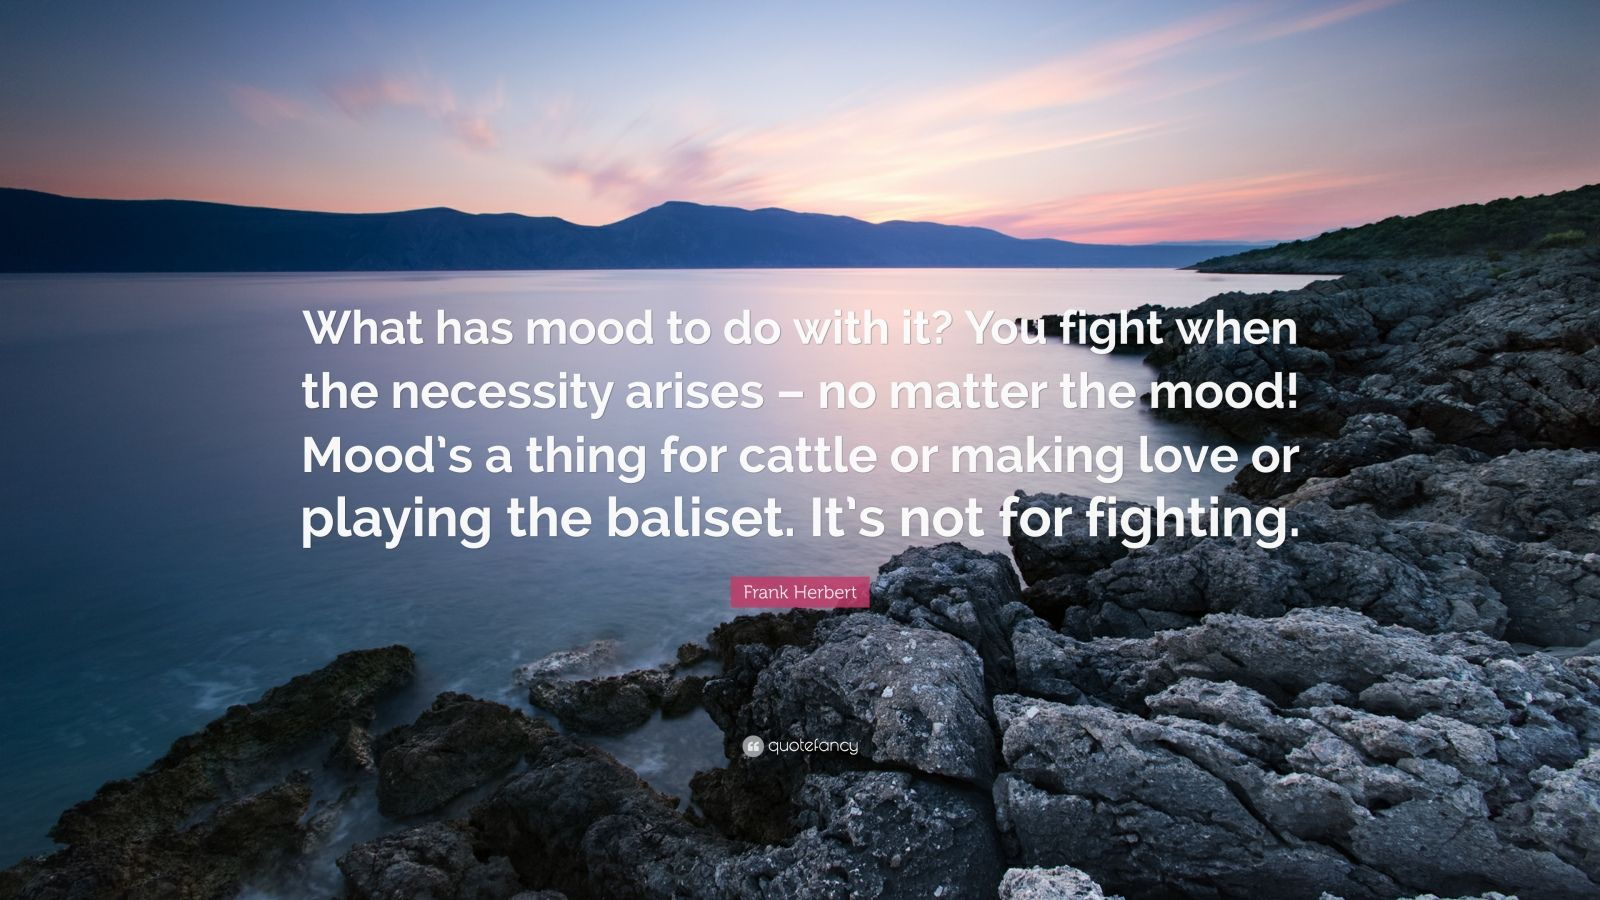 "Frank Herbert Quote: ""What has mood to do with it? You fight when the necessity arises – no matter the mood! Mood's a thing for cattle or making love or playing the baliset. It's not for fighting."""